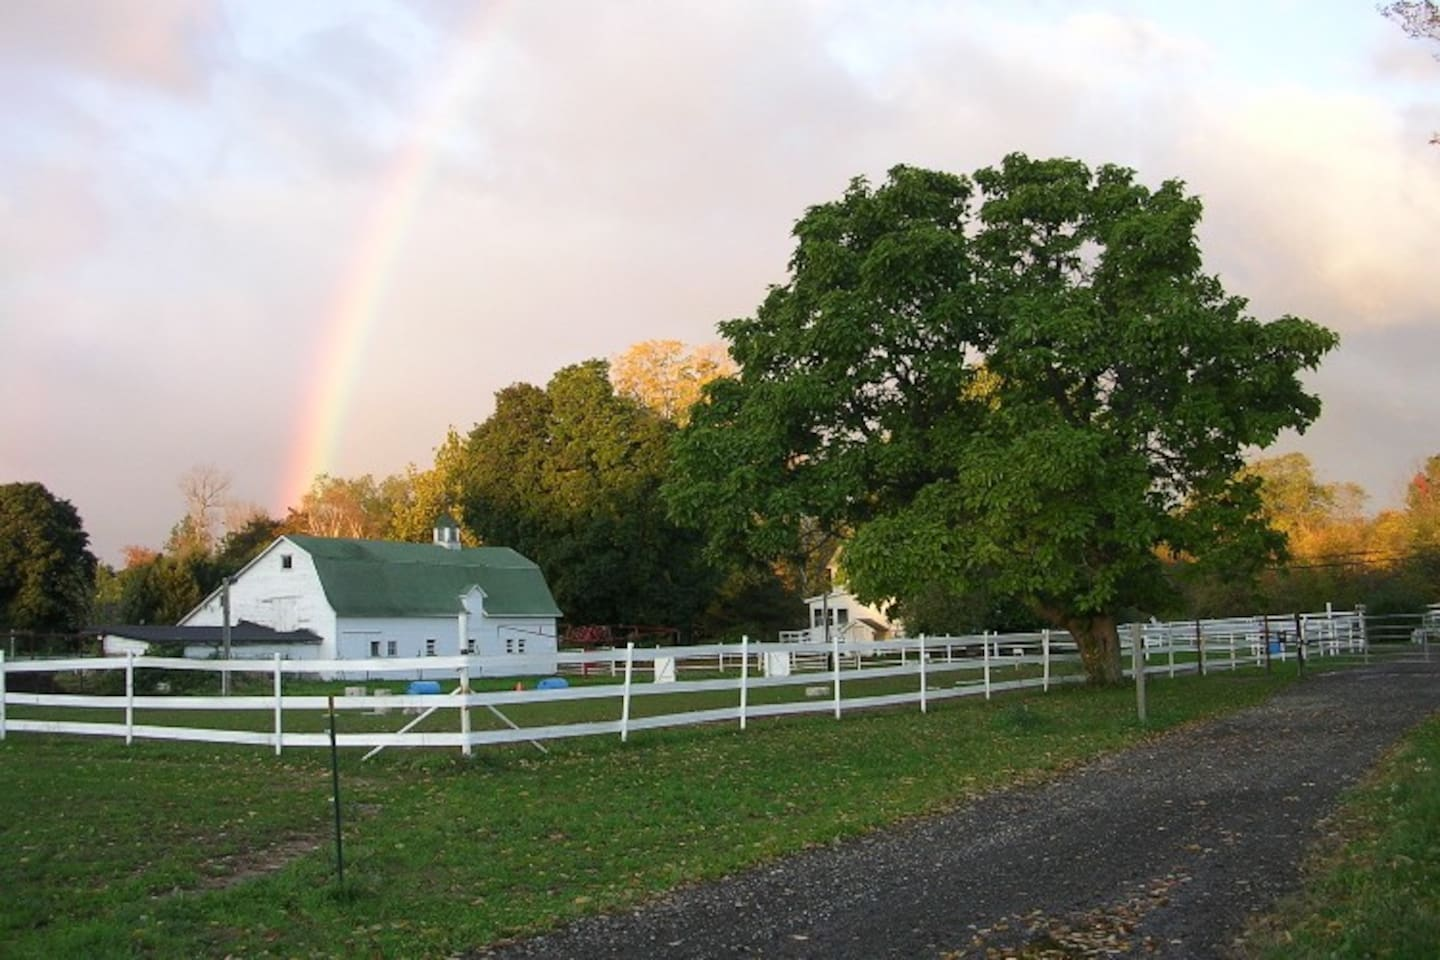 The Horse Barn and riding ring at Maple View Farm